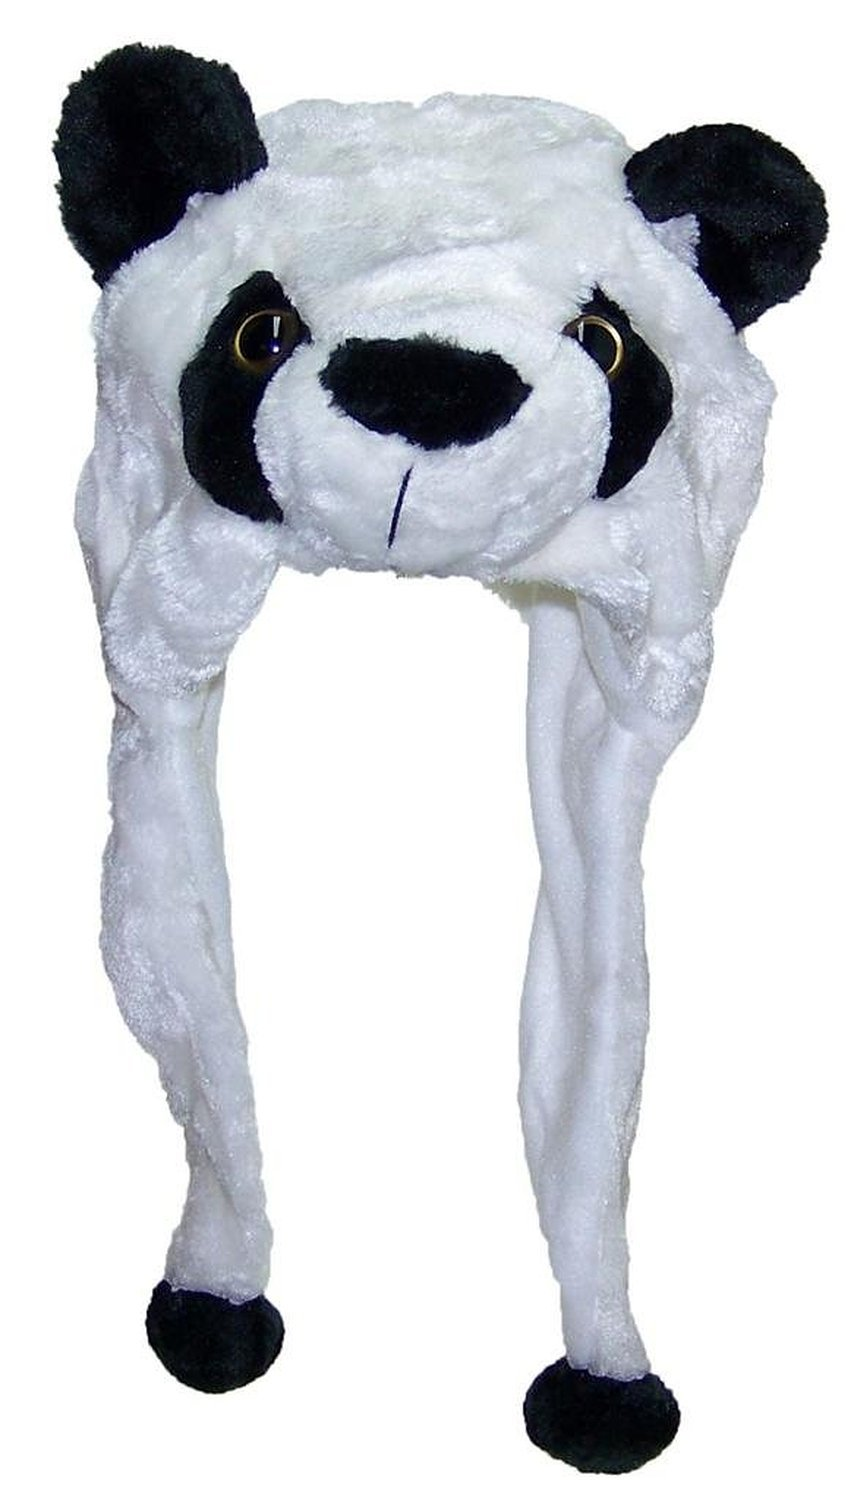 e2d6bed1e US $8.18 9% OFF|DOUBCHOW Cute Plush Fluffy Earflap White Panda Animal Hats  Adults Womens Teenagers Kids Boys Girls Winter Beanie Christmas Gift-in ...